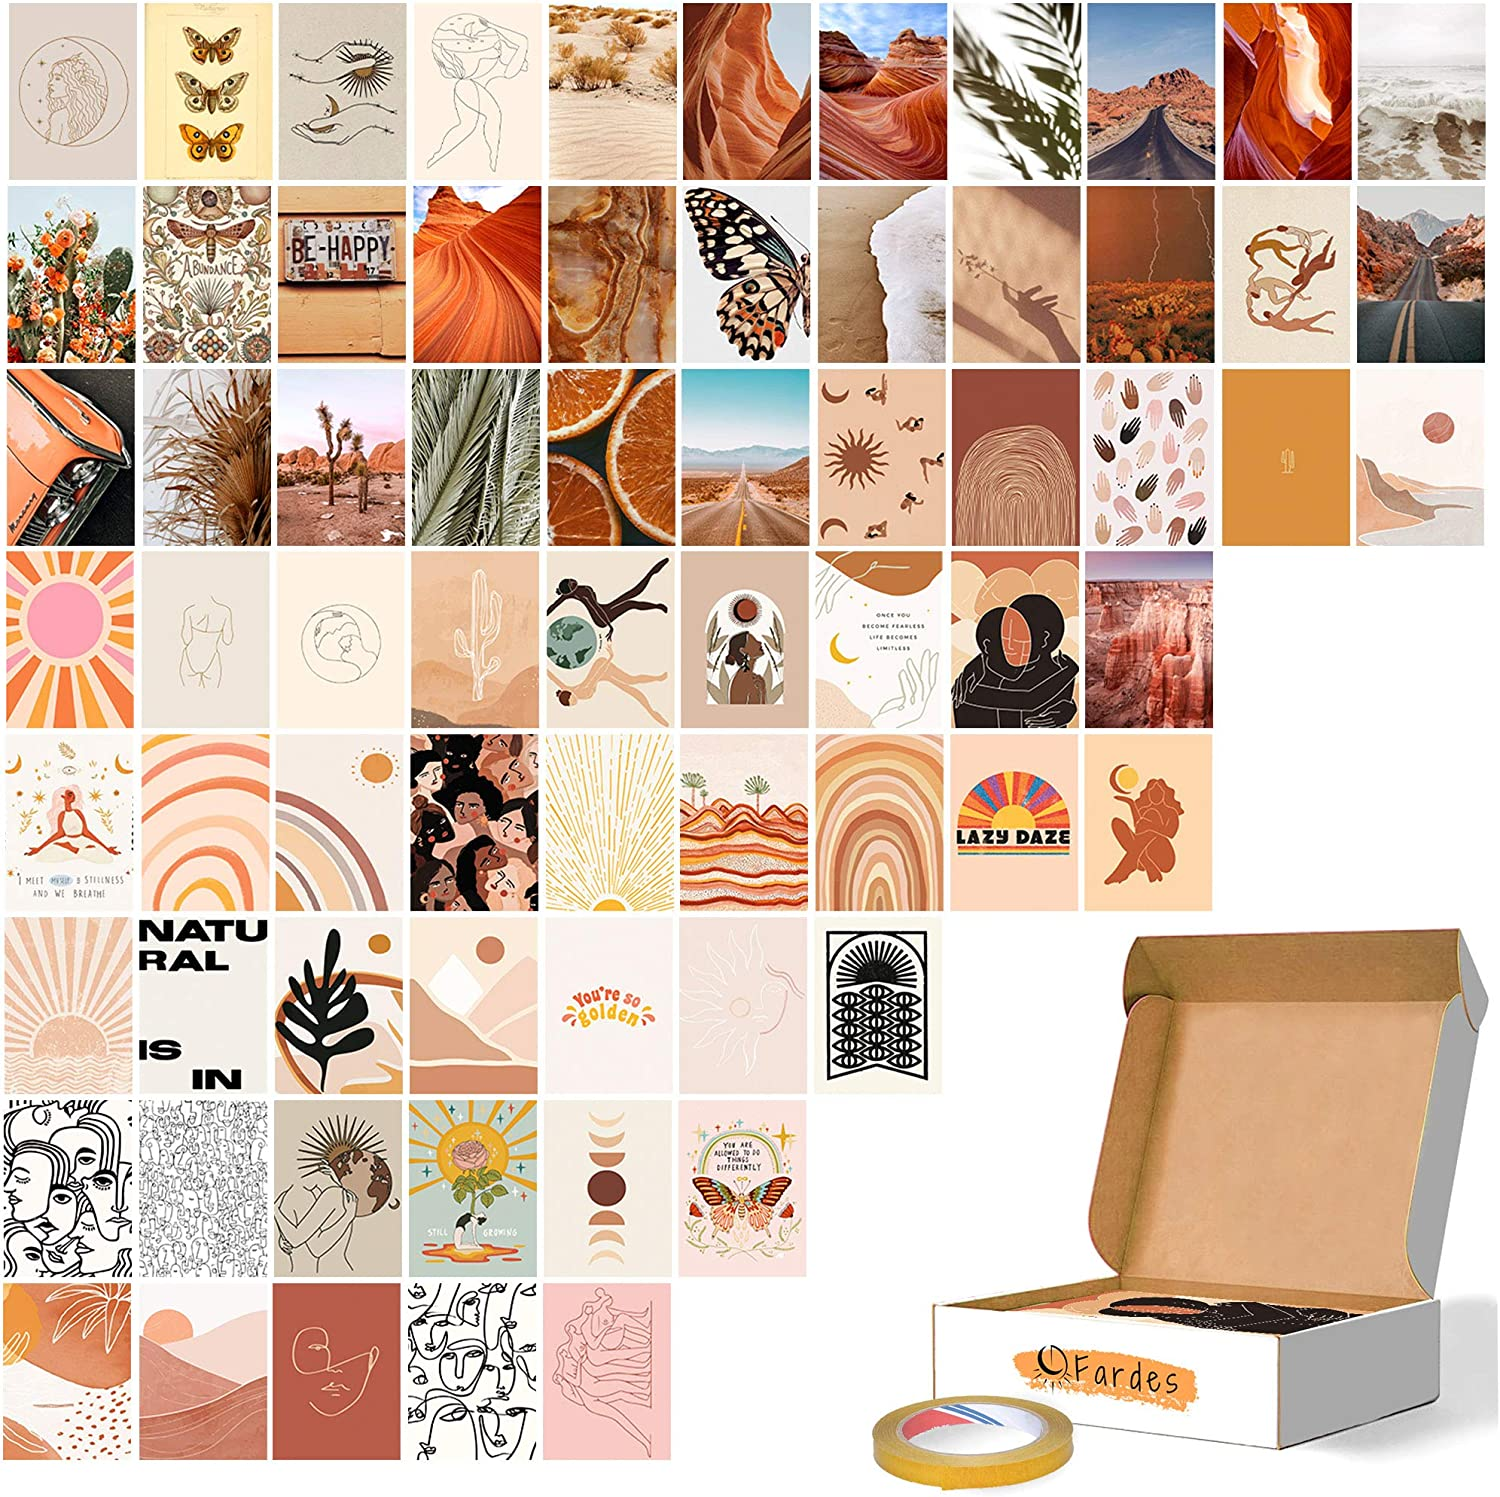 Wall Collage Kit Aesthetic Pictures, Boho Decor | Boho Wall Decor Aesthetic, Include Strong Double-Sided Tape, Collage Set for Boho Room Decor Aesthetic Vintage | Photo Collage Kit for Teen Girls Bedroom | 70 Set of 4x6 Inch Cardstocks